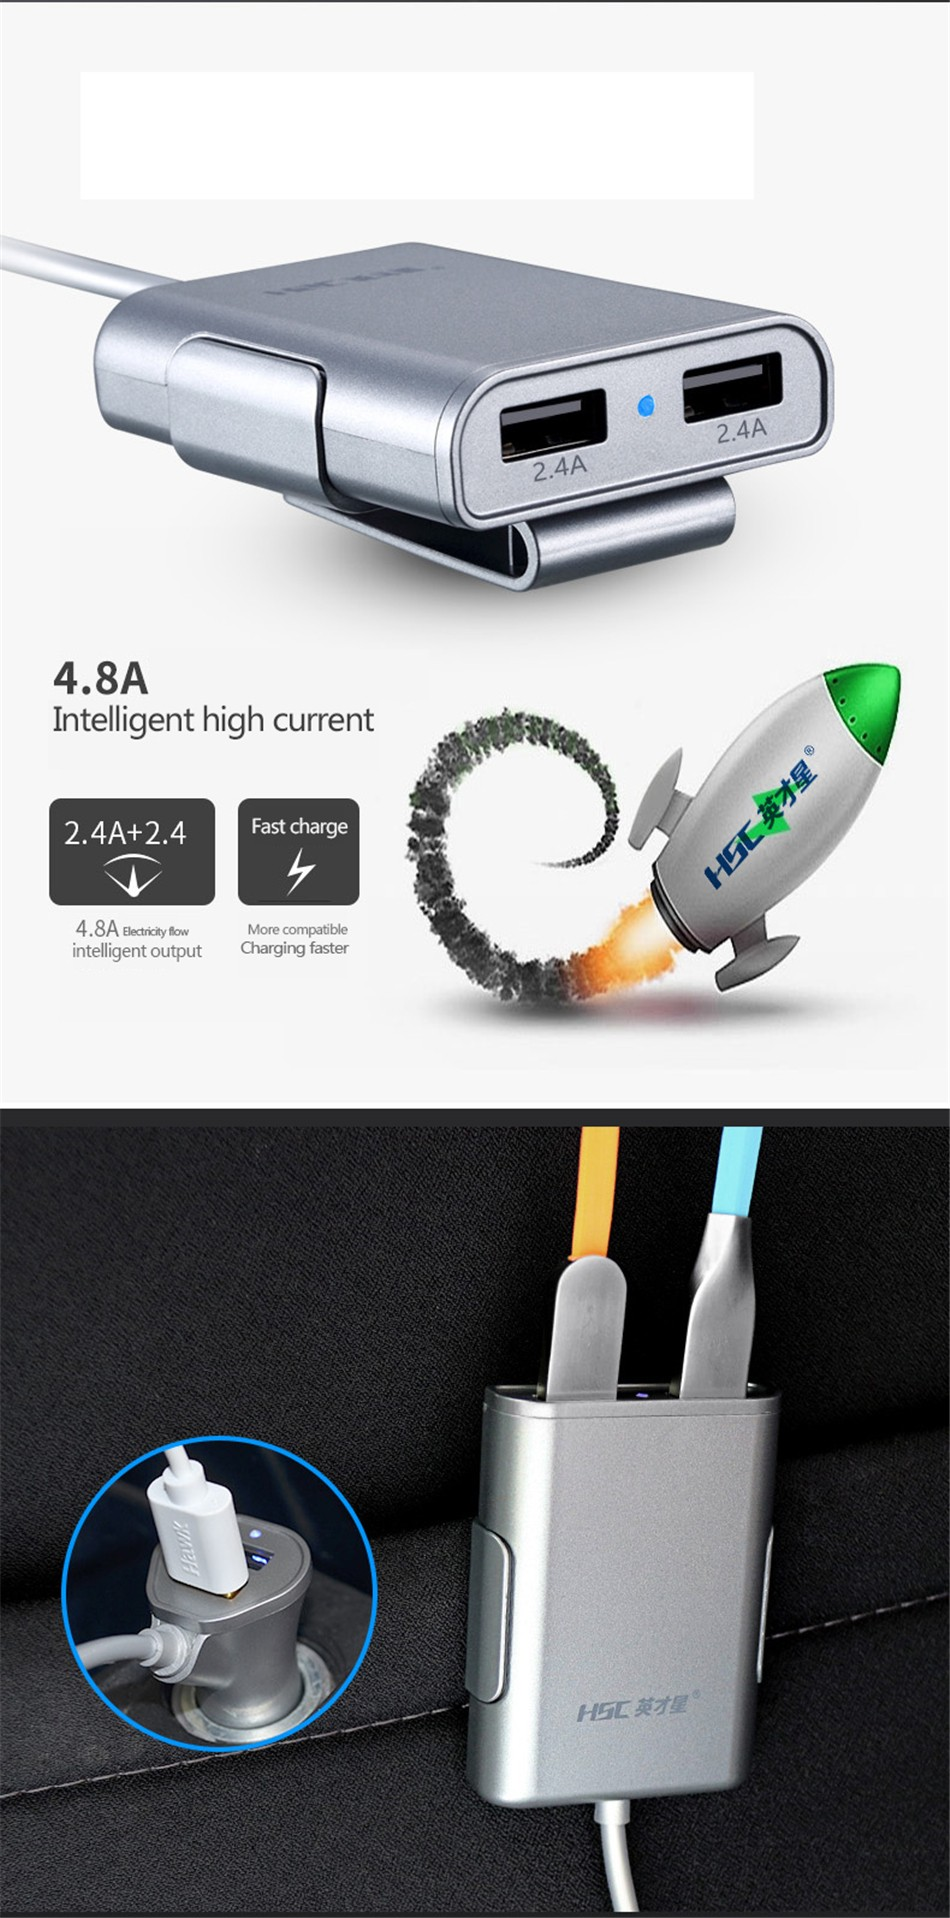 Brand HSC-600 car-charger 4 USB 4.8A Lengthen 1.8 meters , car charger for ipad iphone 5 5s 6 6s and samsung phone (8)